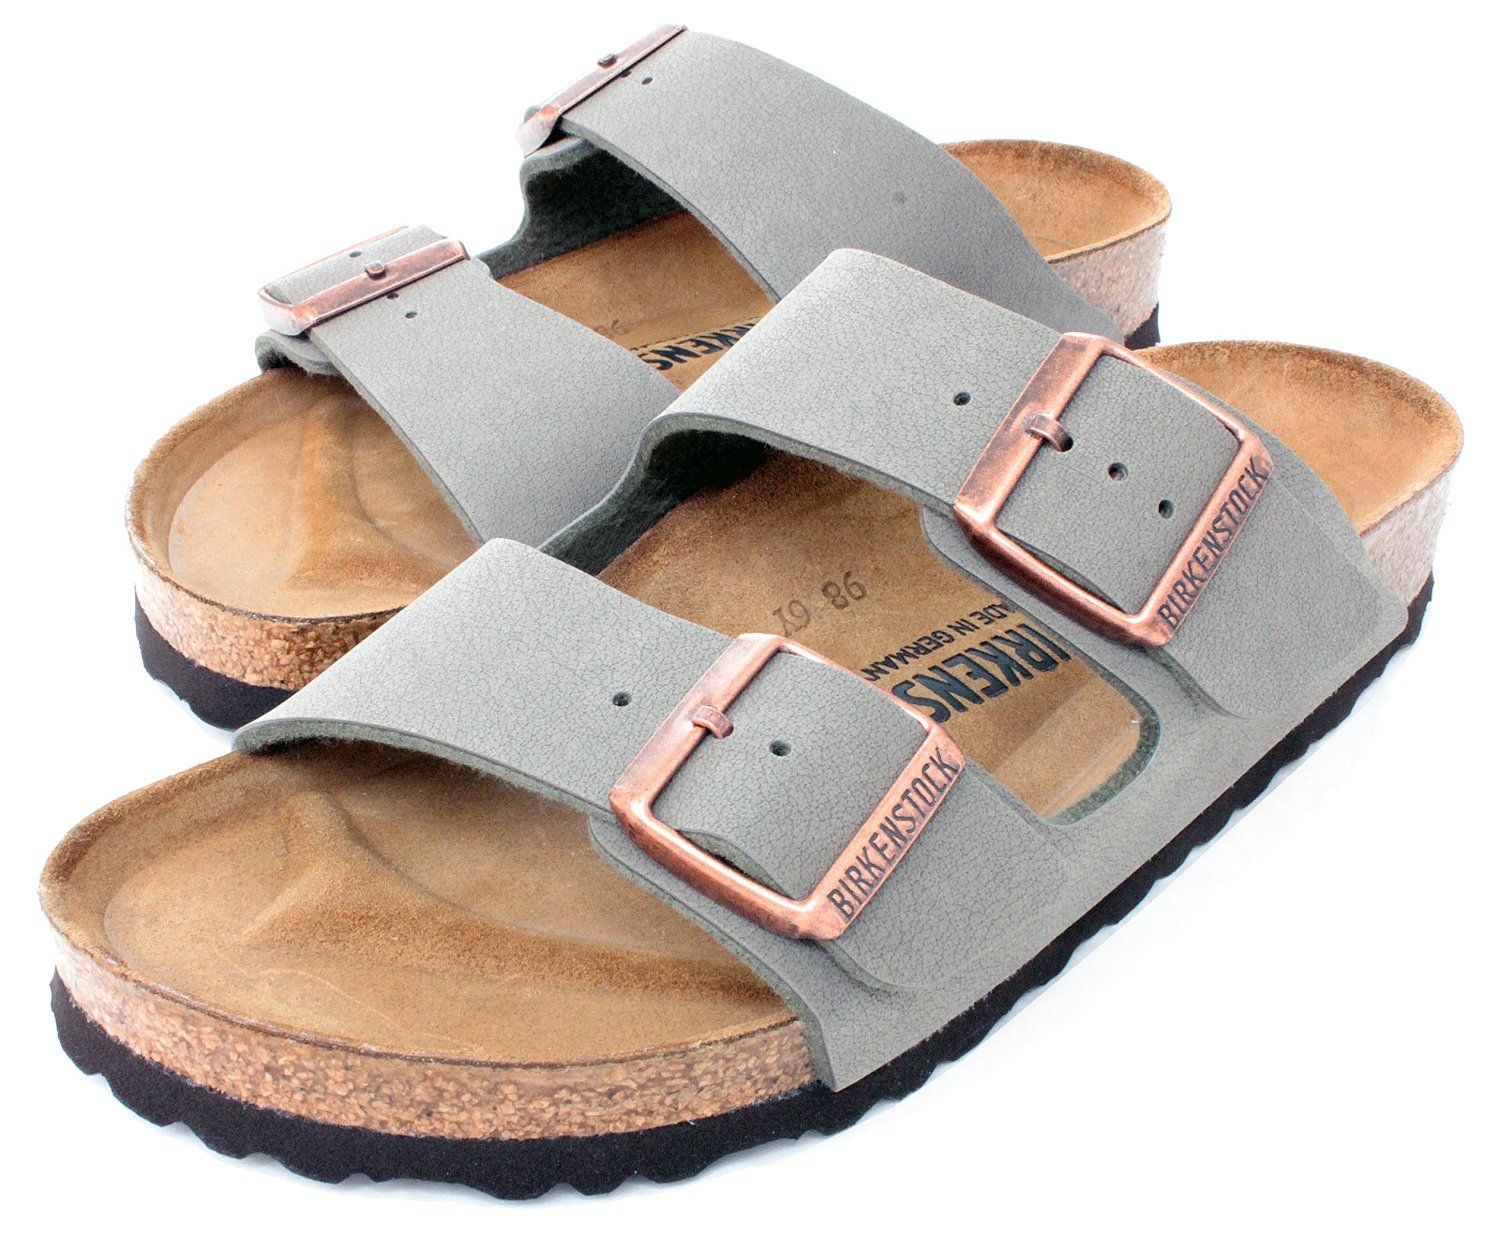 Birkenstock Arizona 2-Strap Women s Sandals in Stone Birko-Flor ... 6bf2a3025